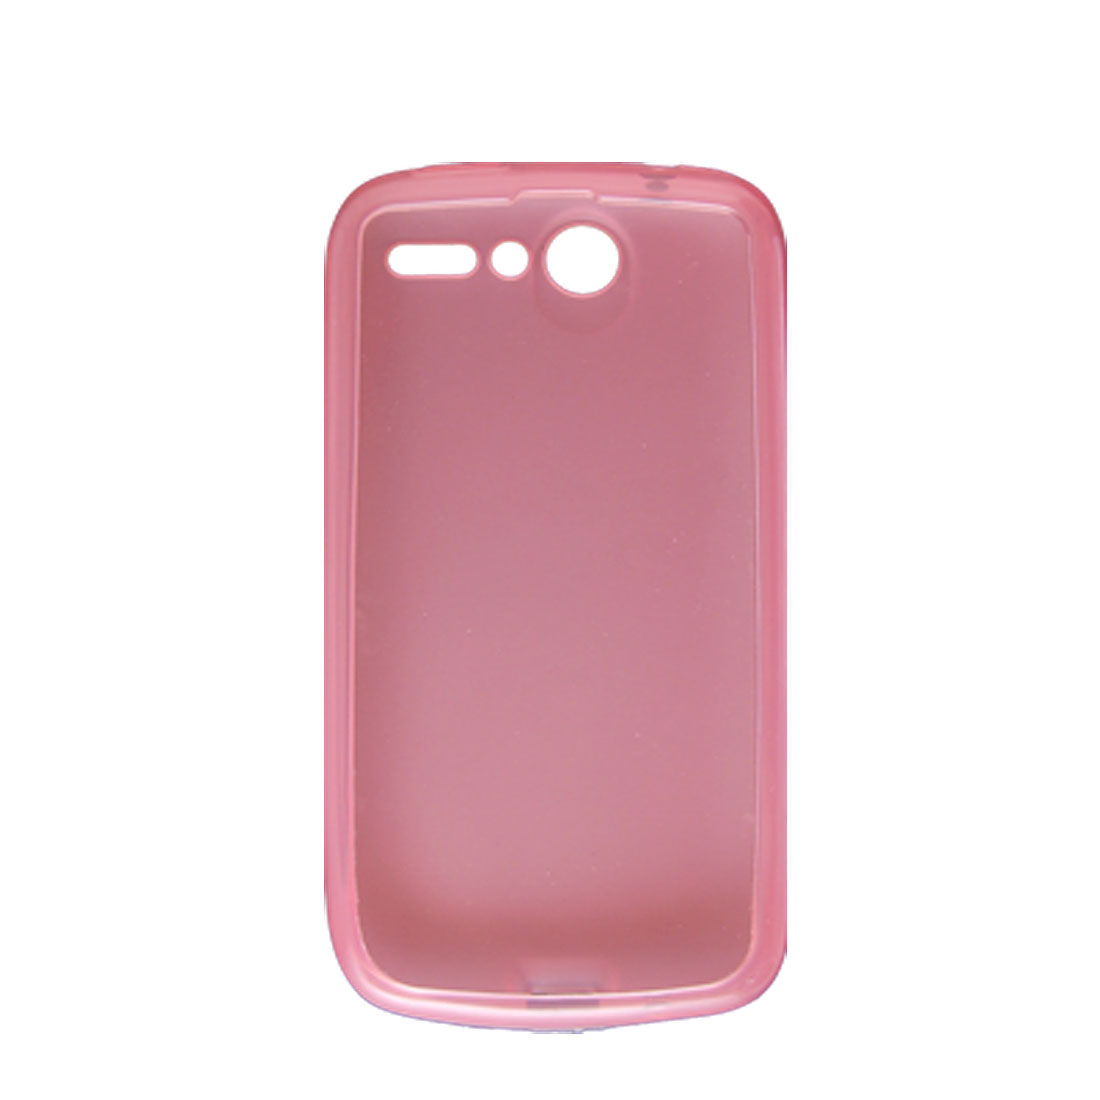 Clear Pink Soft Plastic Protector Cover Case for HTC Desire G7